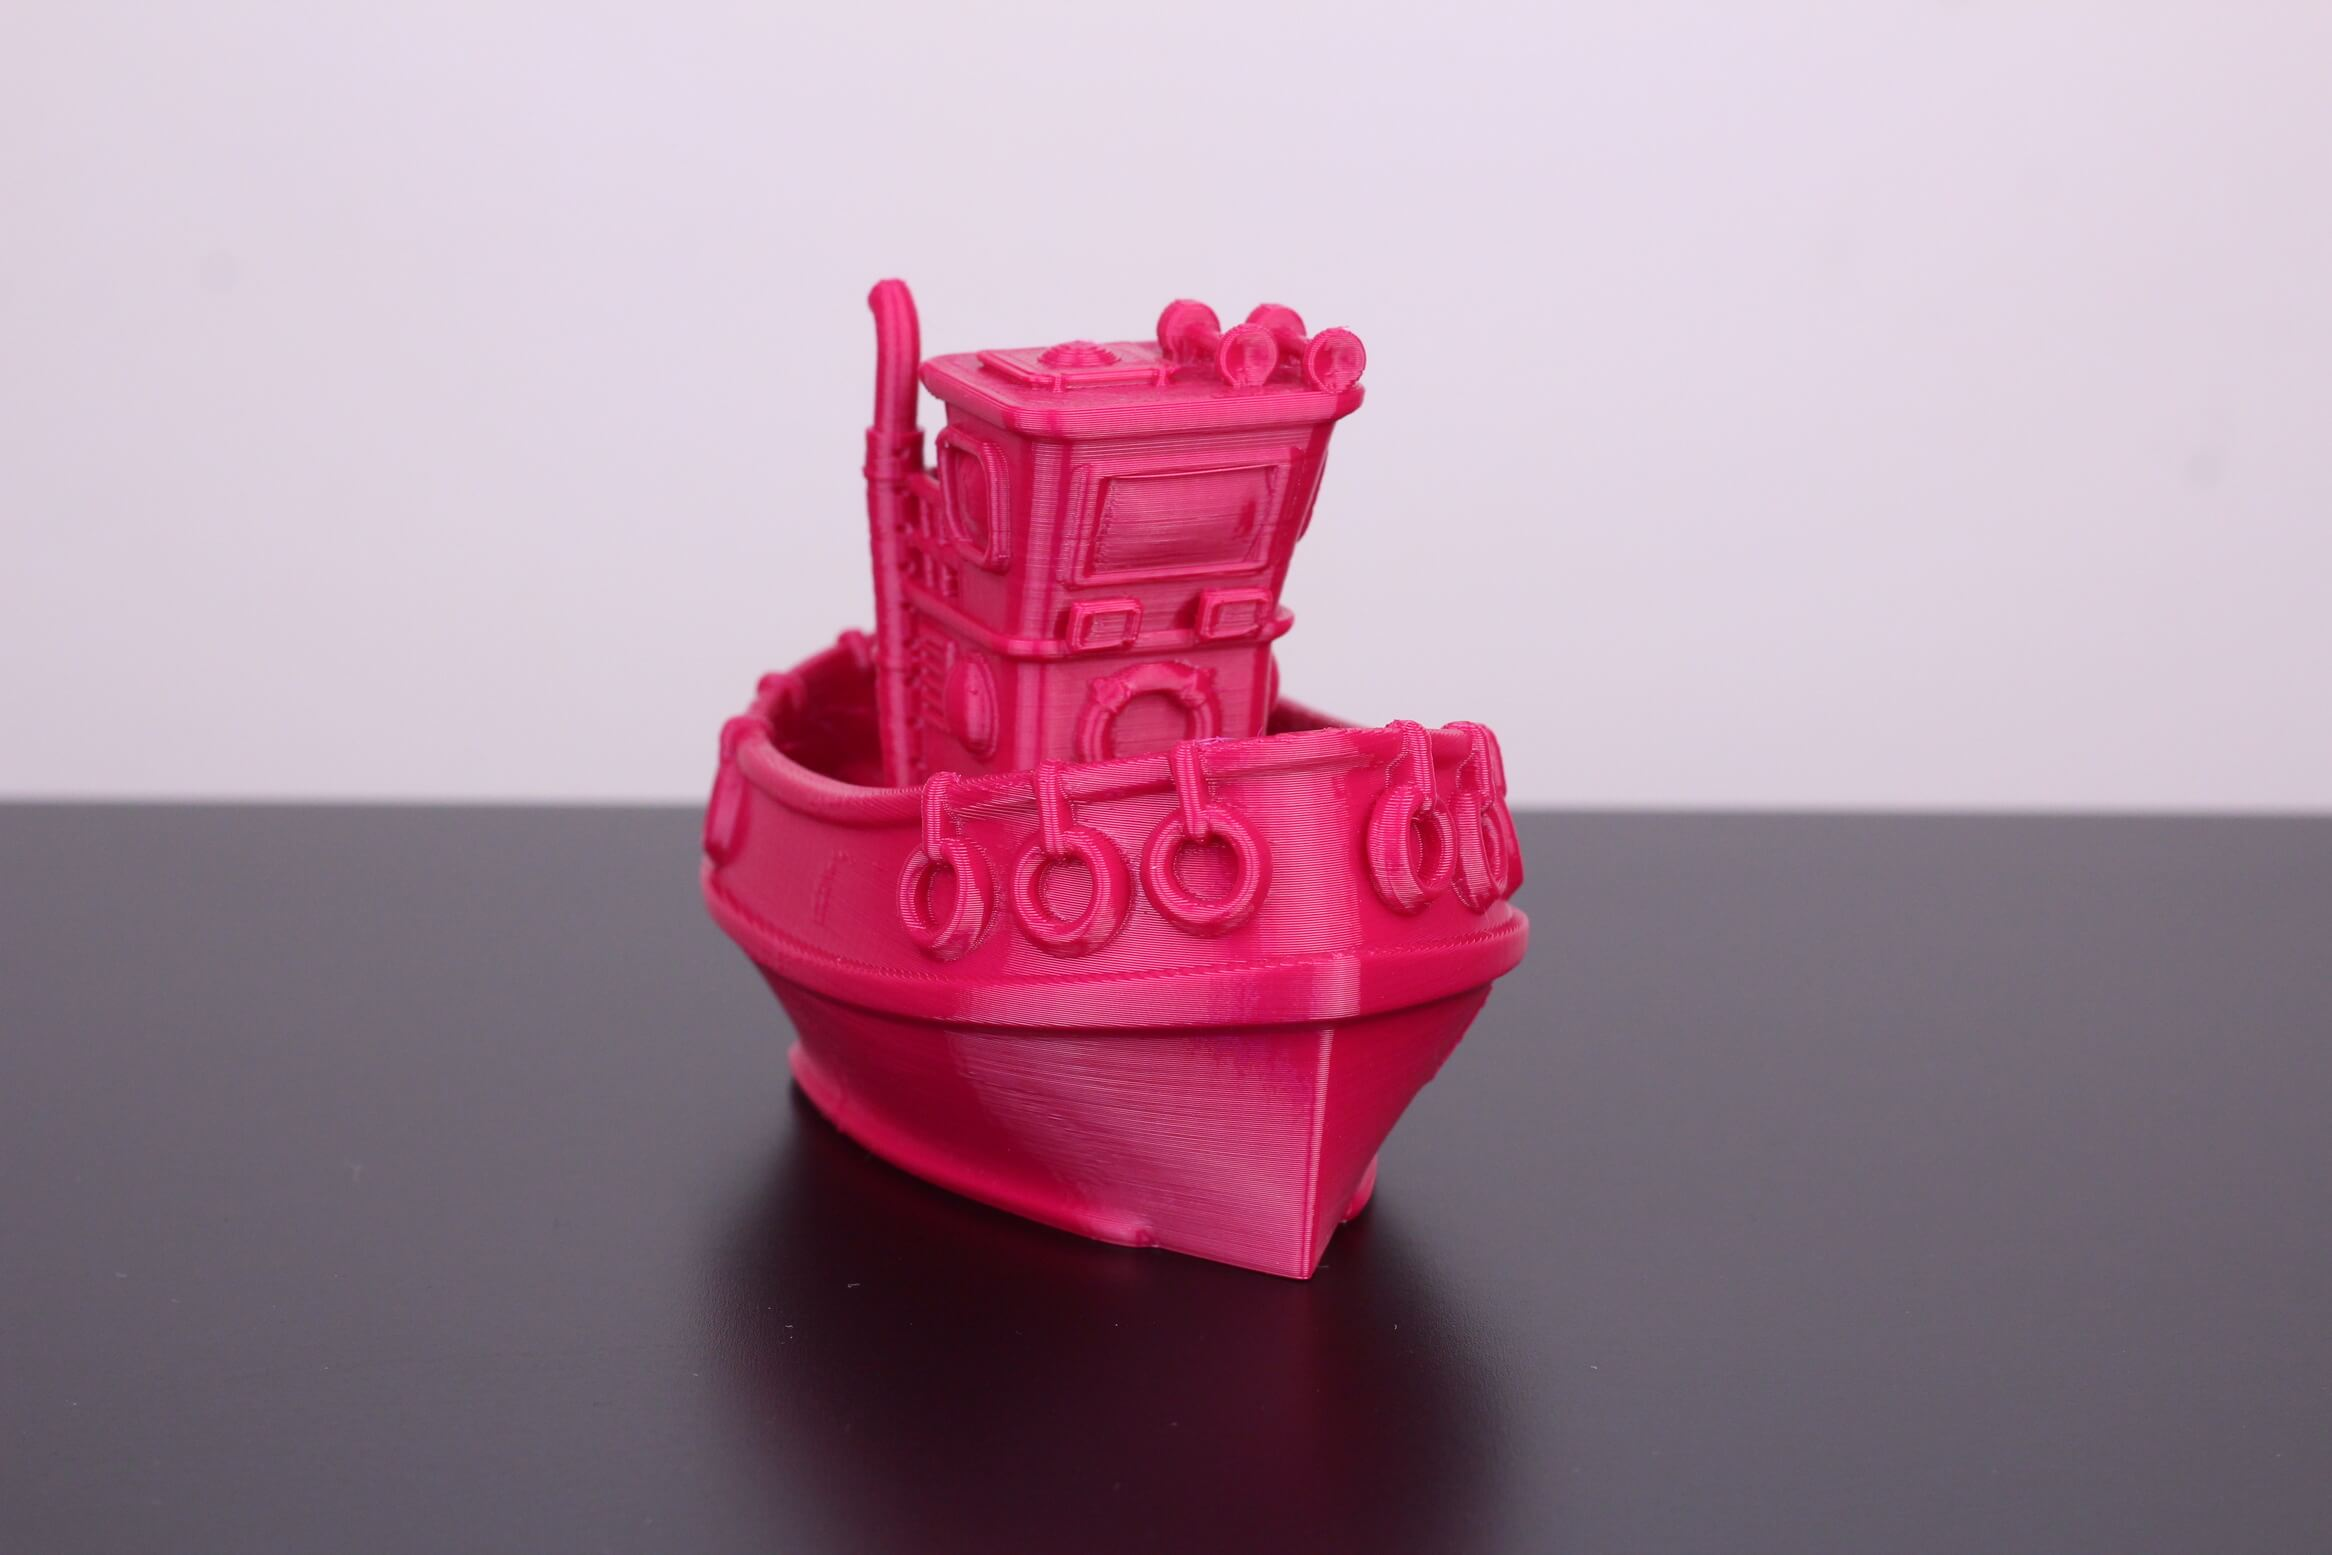 Bathtub-Boat-printed-in-PETG-on-BIQU-BX-4